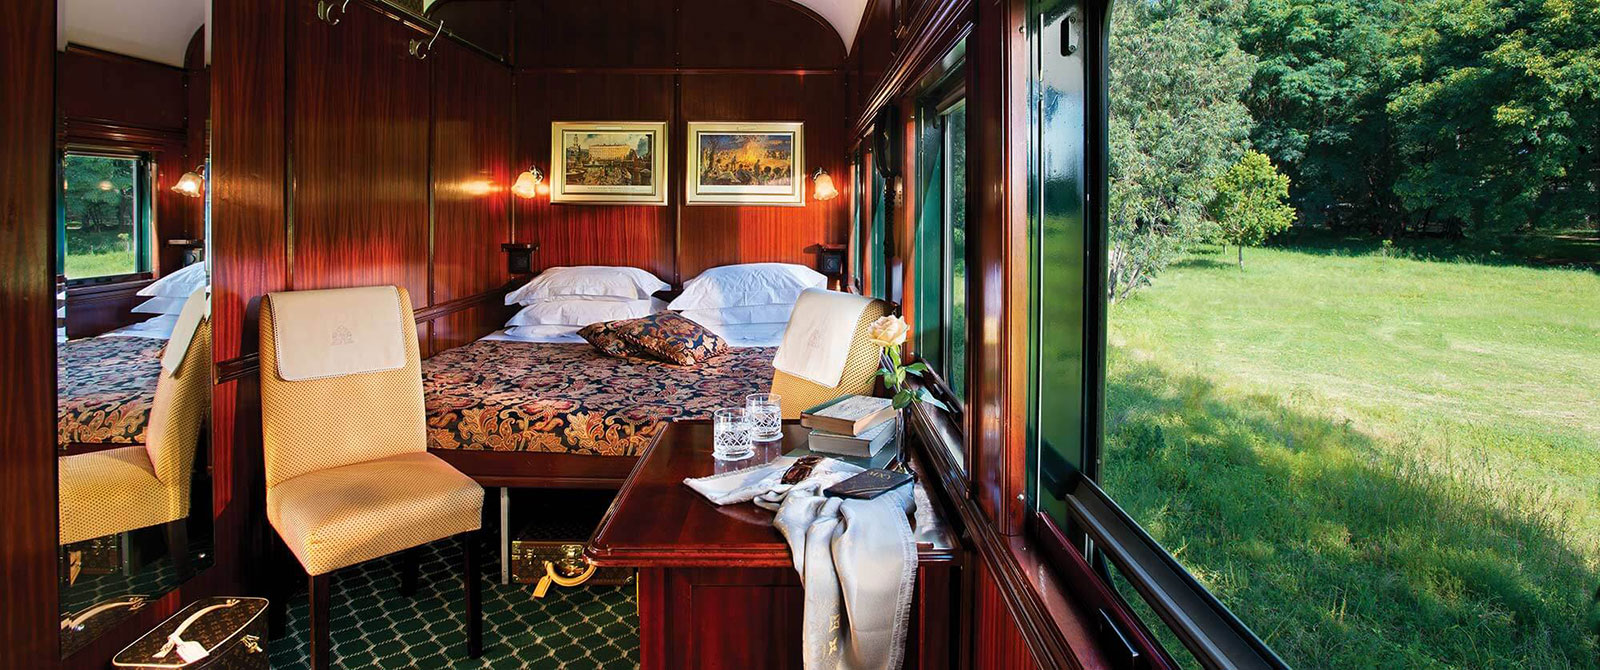 Deluxe Suite Aboard the Rovos Rail, South Africa